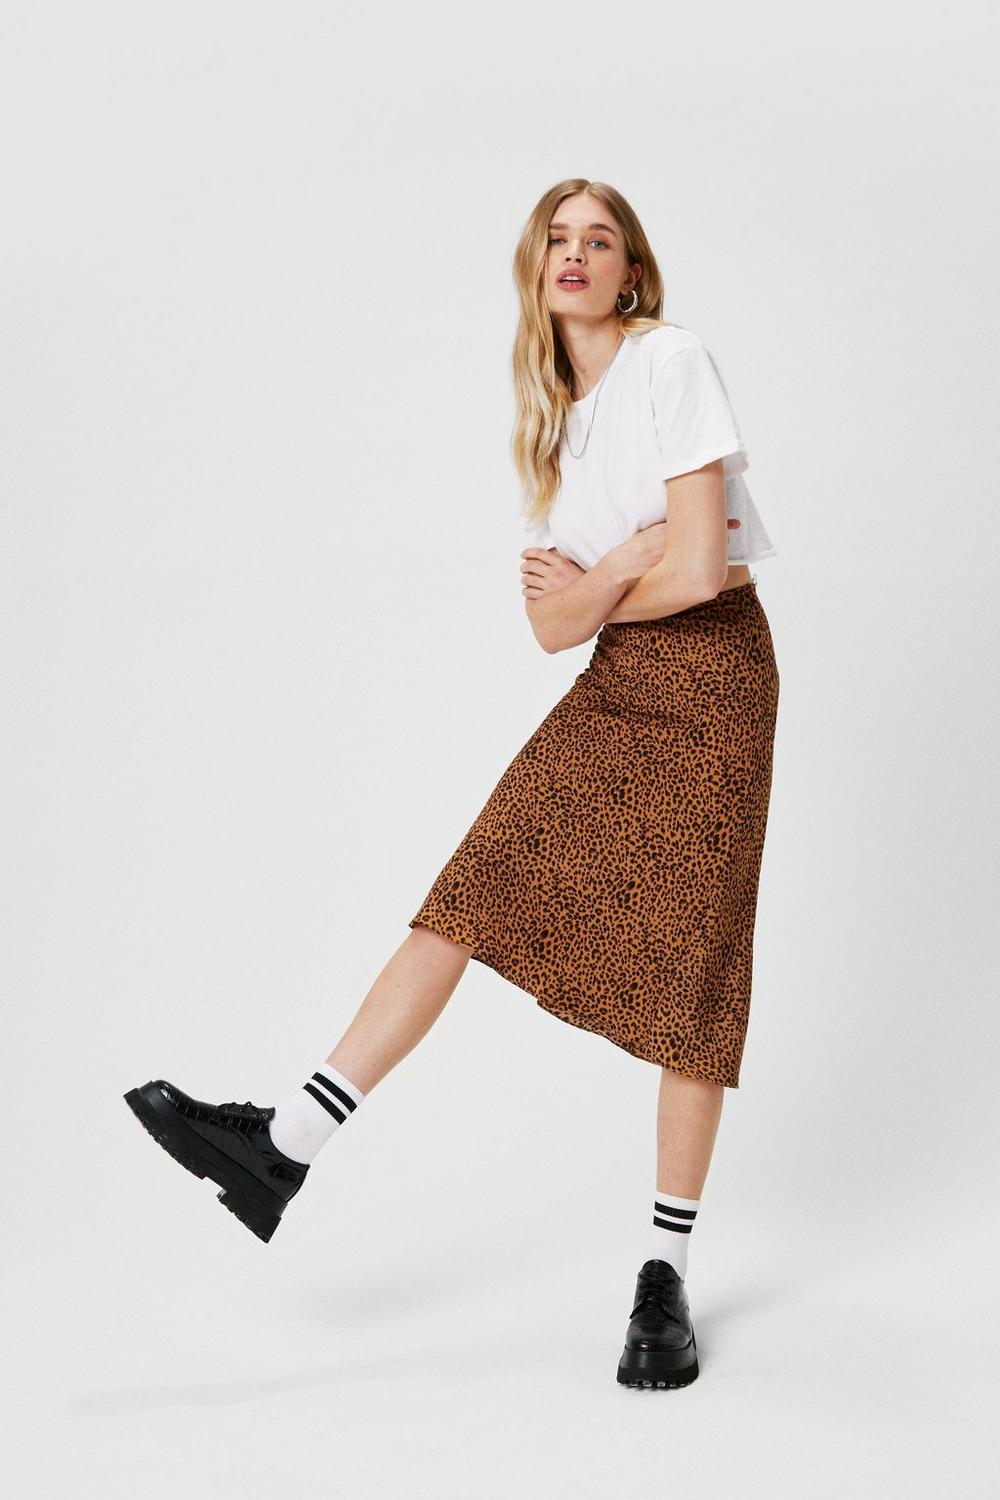 ad2b8c6750 Claw-t in the Act Satin Midi Skirt | Shop Clothes at Nasty Gal!